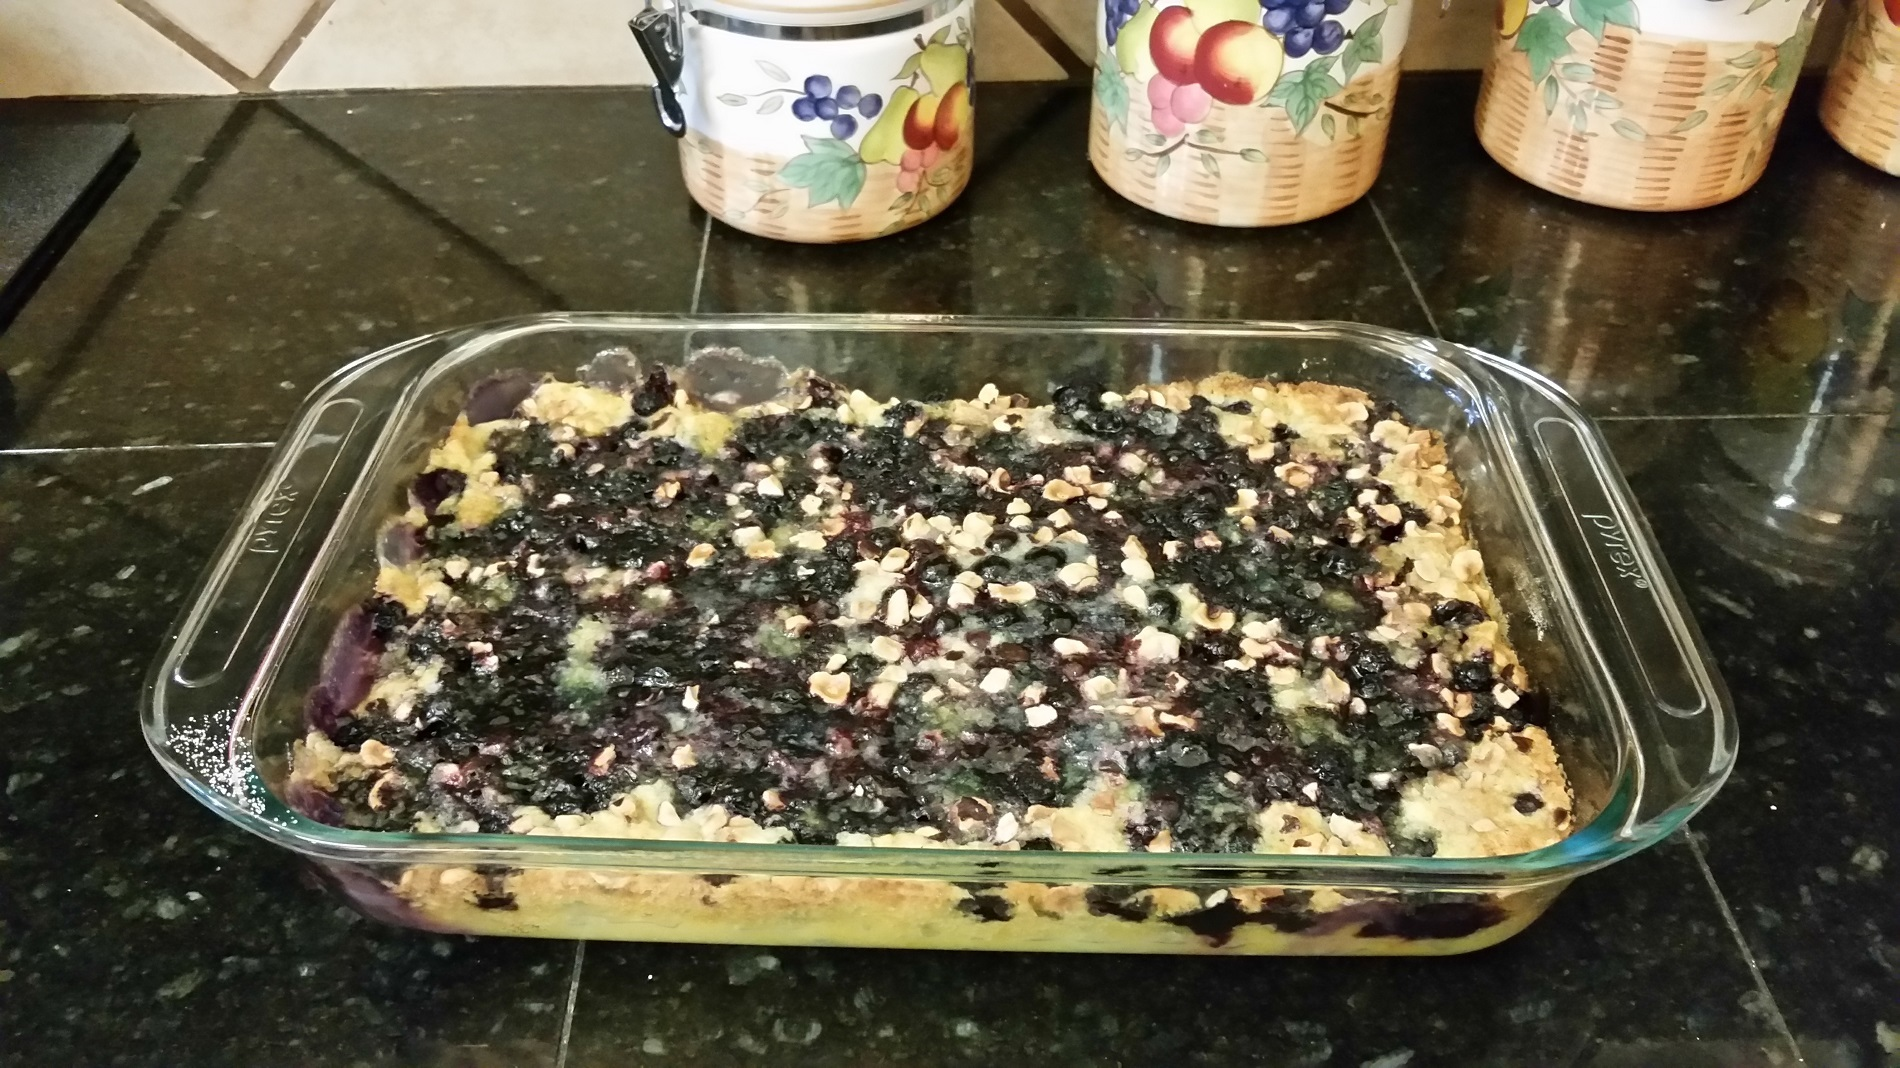 Baked blueberry crunch by Pat Starnes